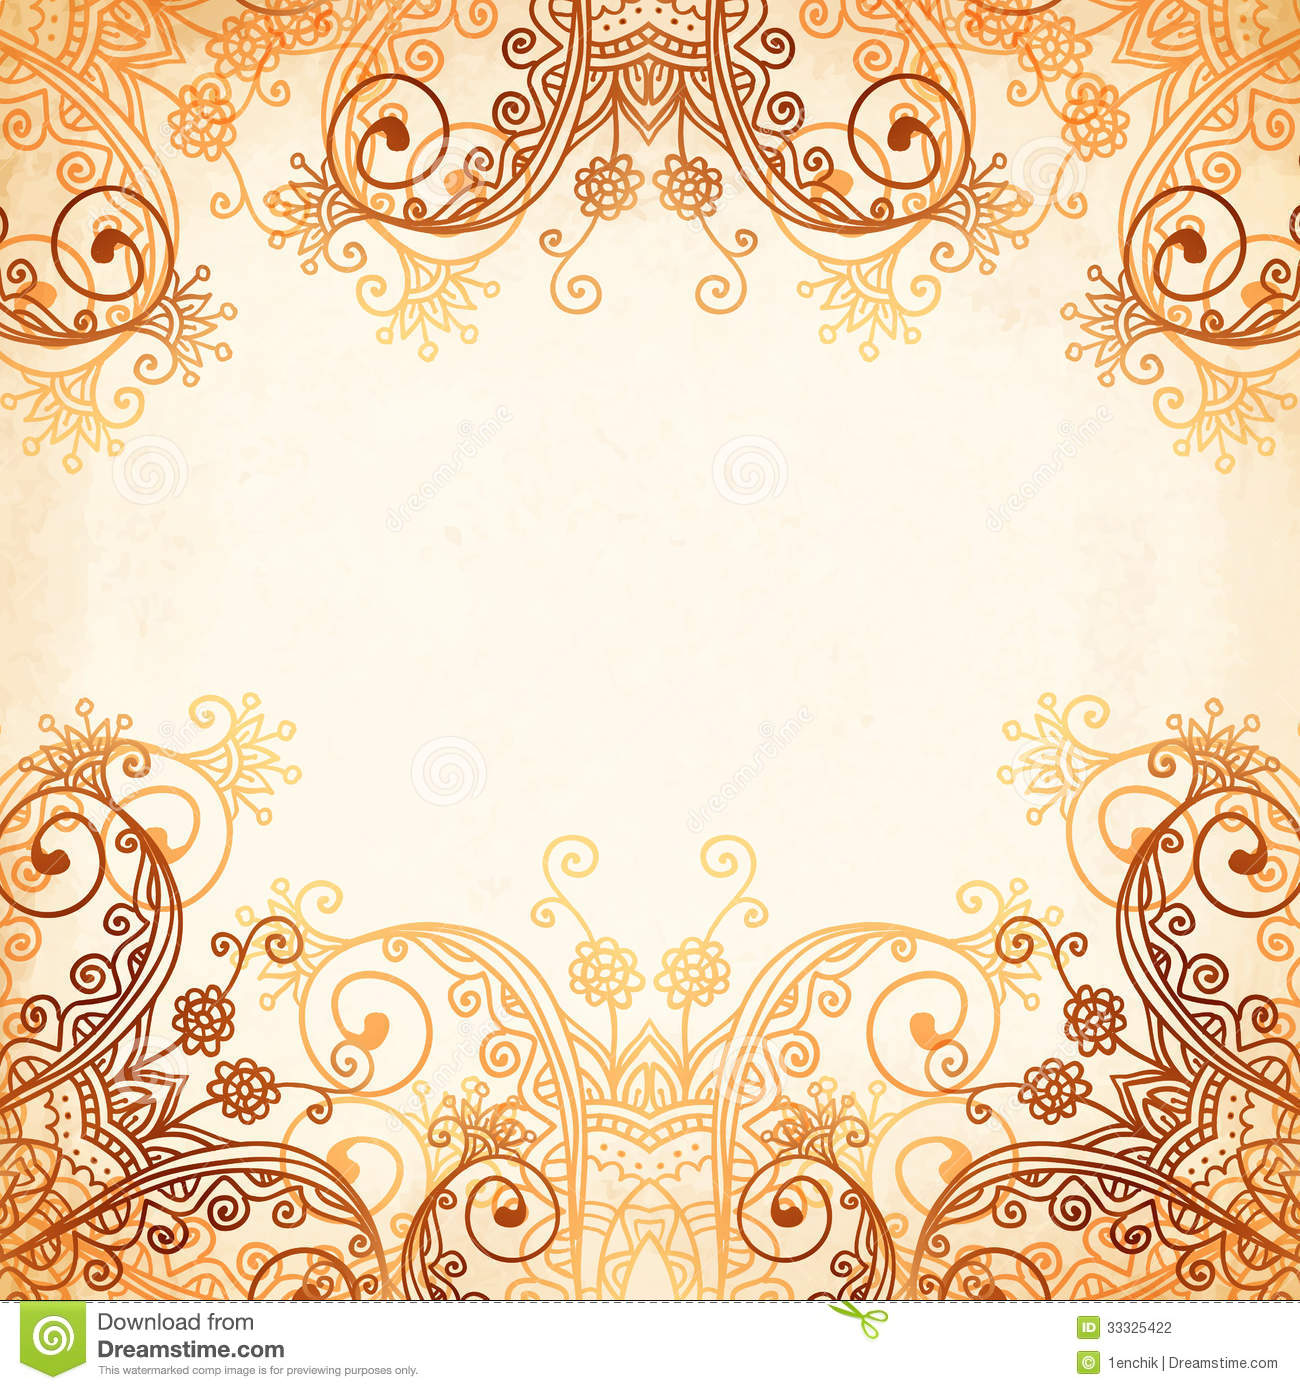 Mehndi Circle Vector : Ornate vintage circle pattern in mehndi style stock vector